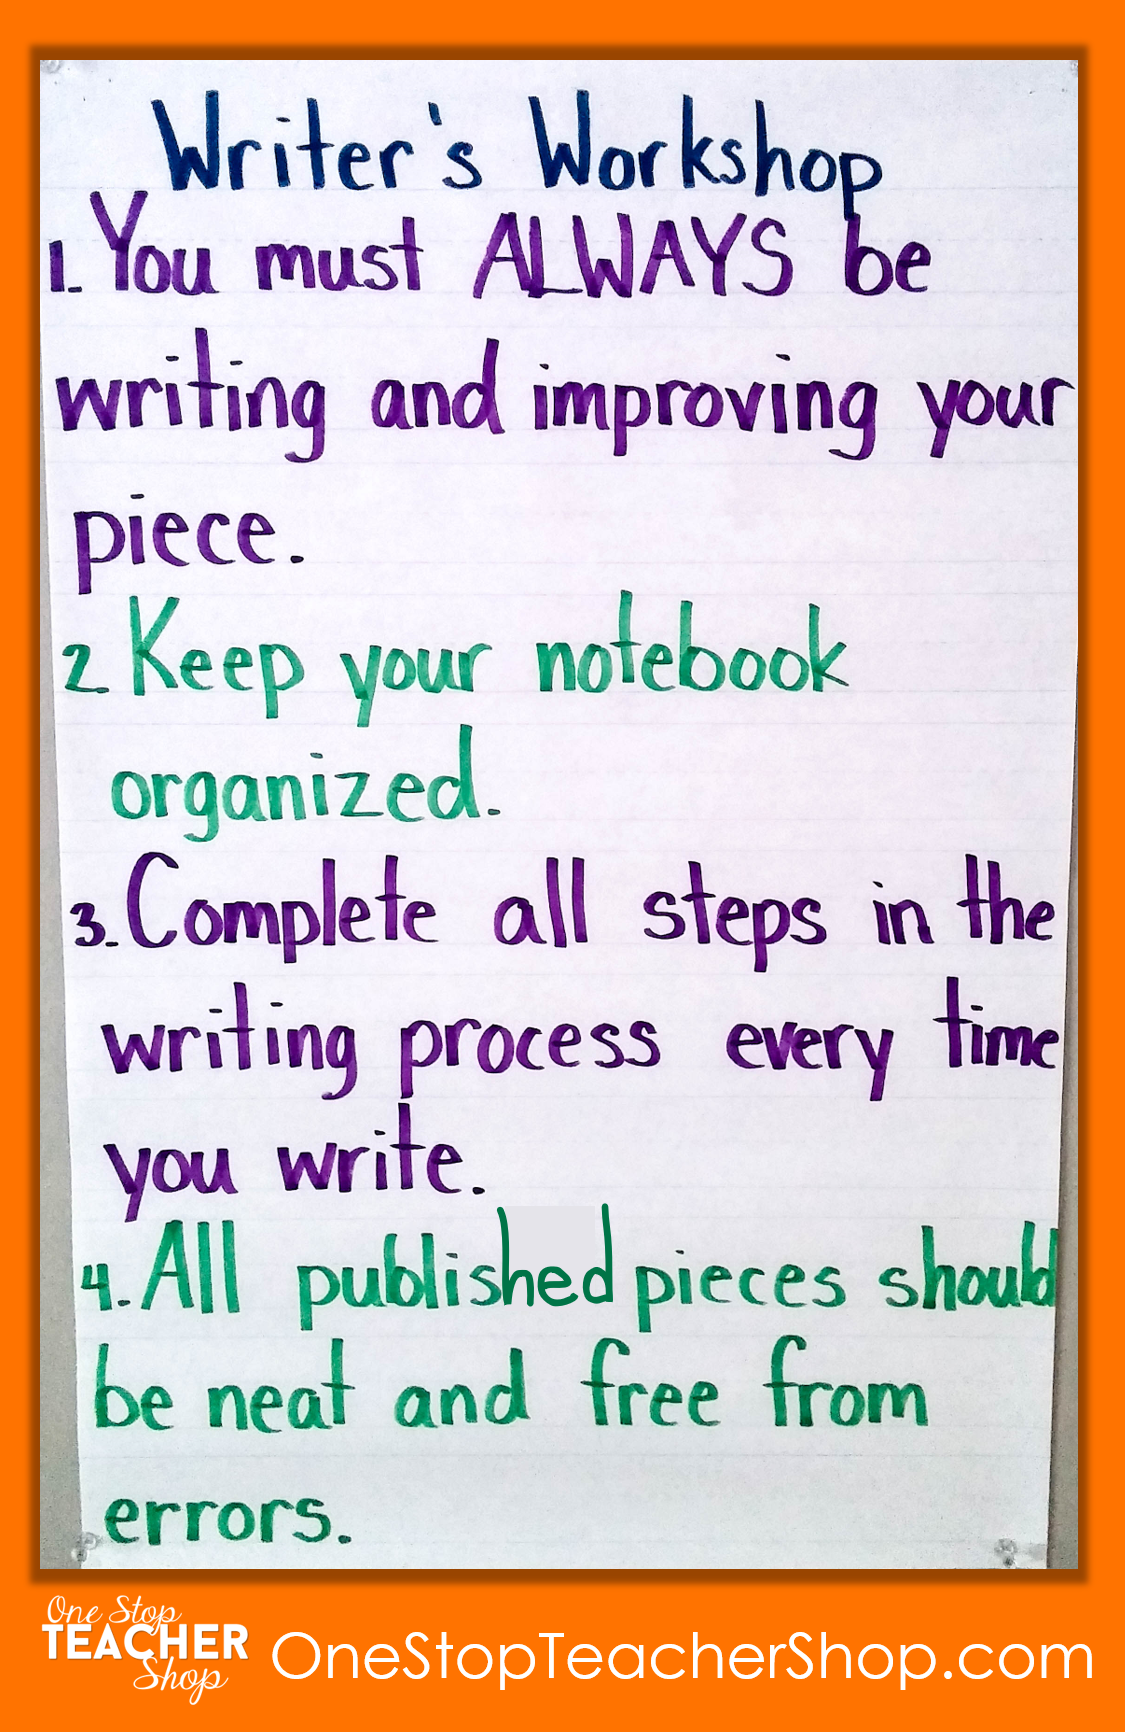 Writers Workshop Anchor Chart - Check out my collection of anchor charts for math, reading, writing, and grammar. I love anchor charts even though I'm not so great at making them! Also, get some tips for using anchor charts effectively in your classroom.